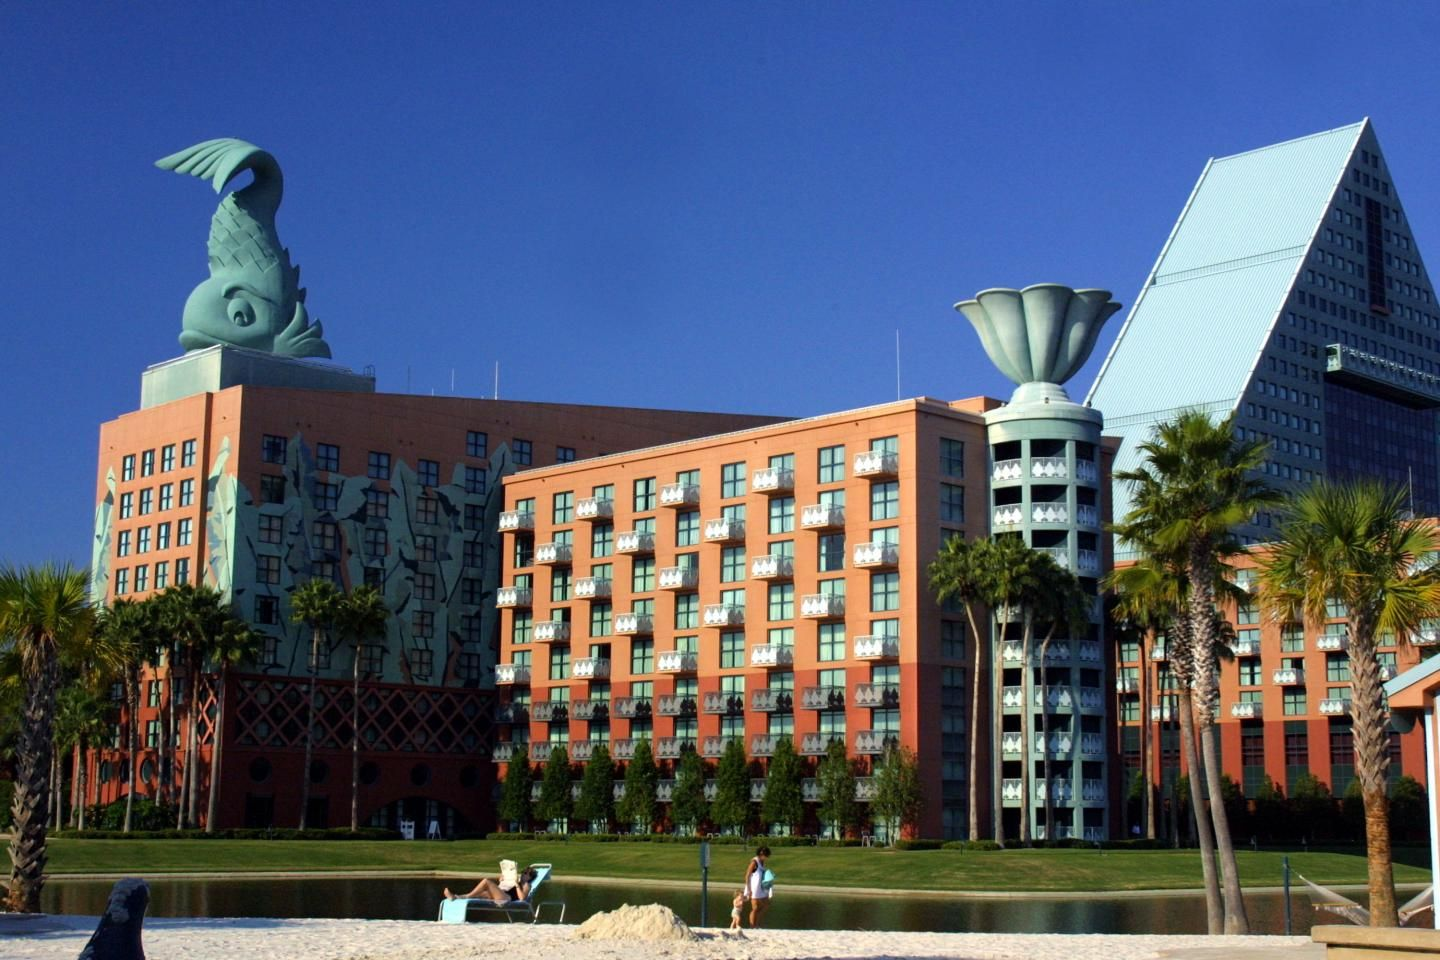 Discounted rooms at Disney are just one perk nurses can